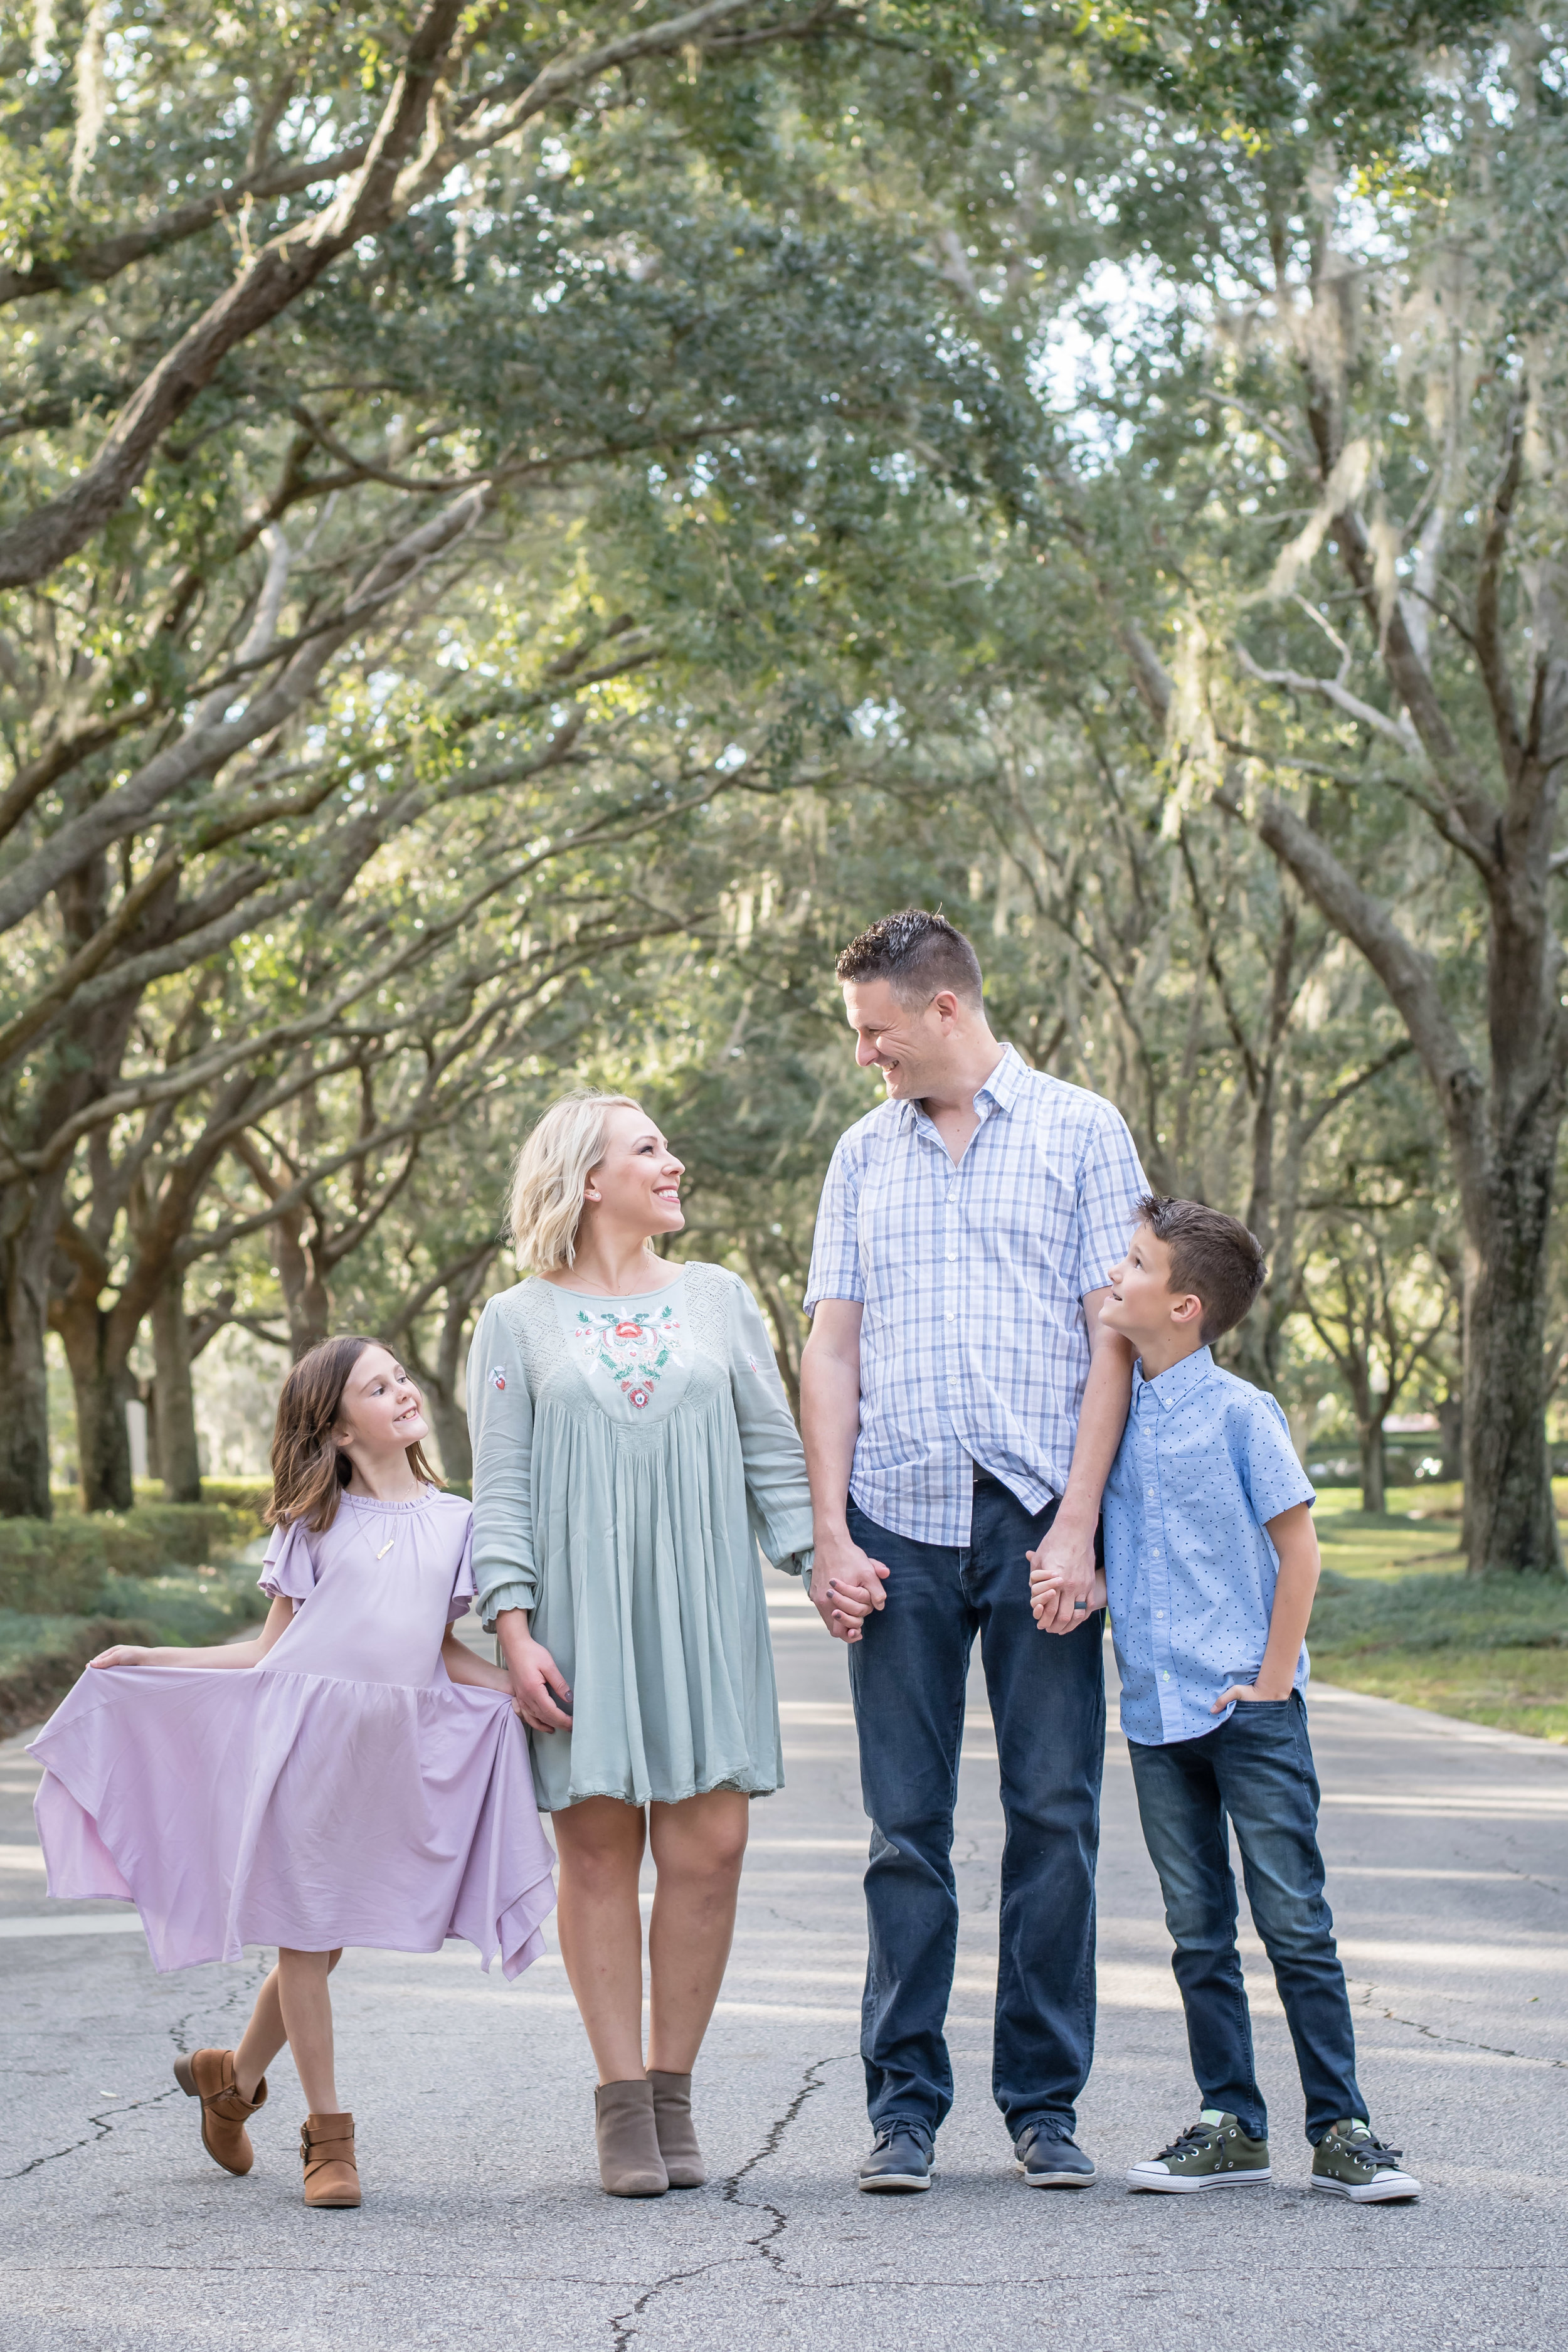 cypress-grove-park-family-session-orlando-photographer-yanitza-ninett-15.jpg